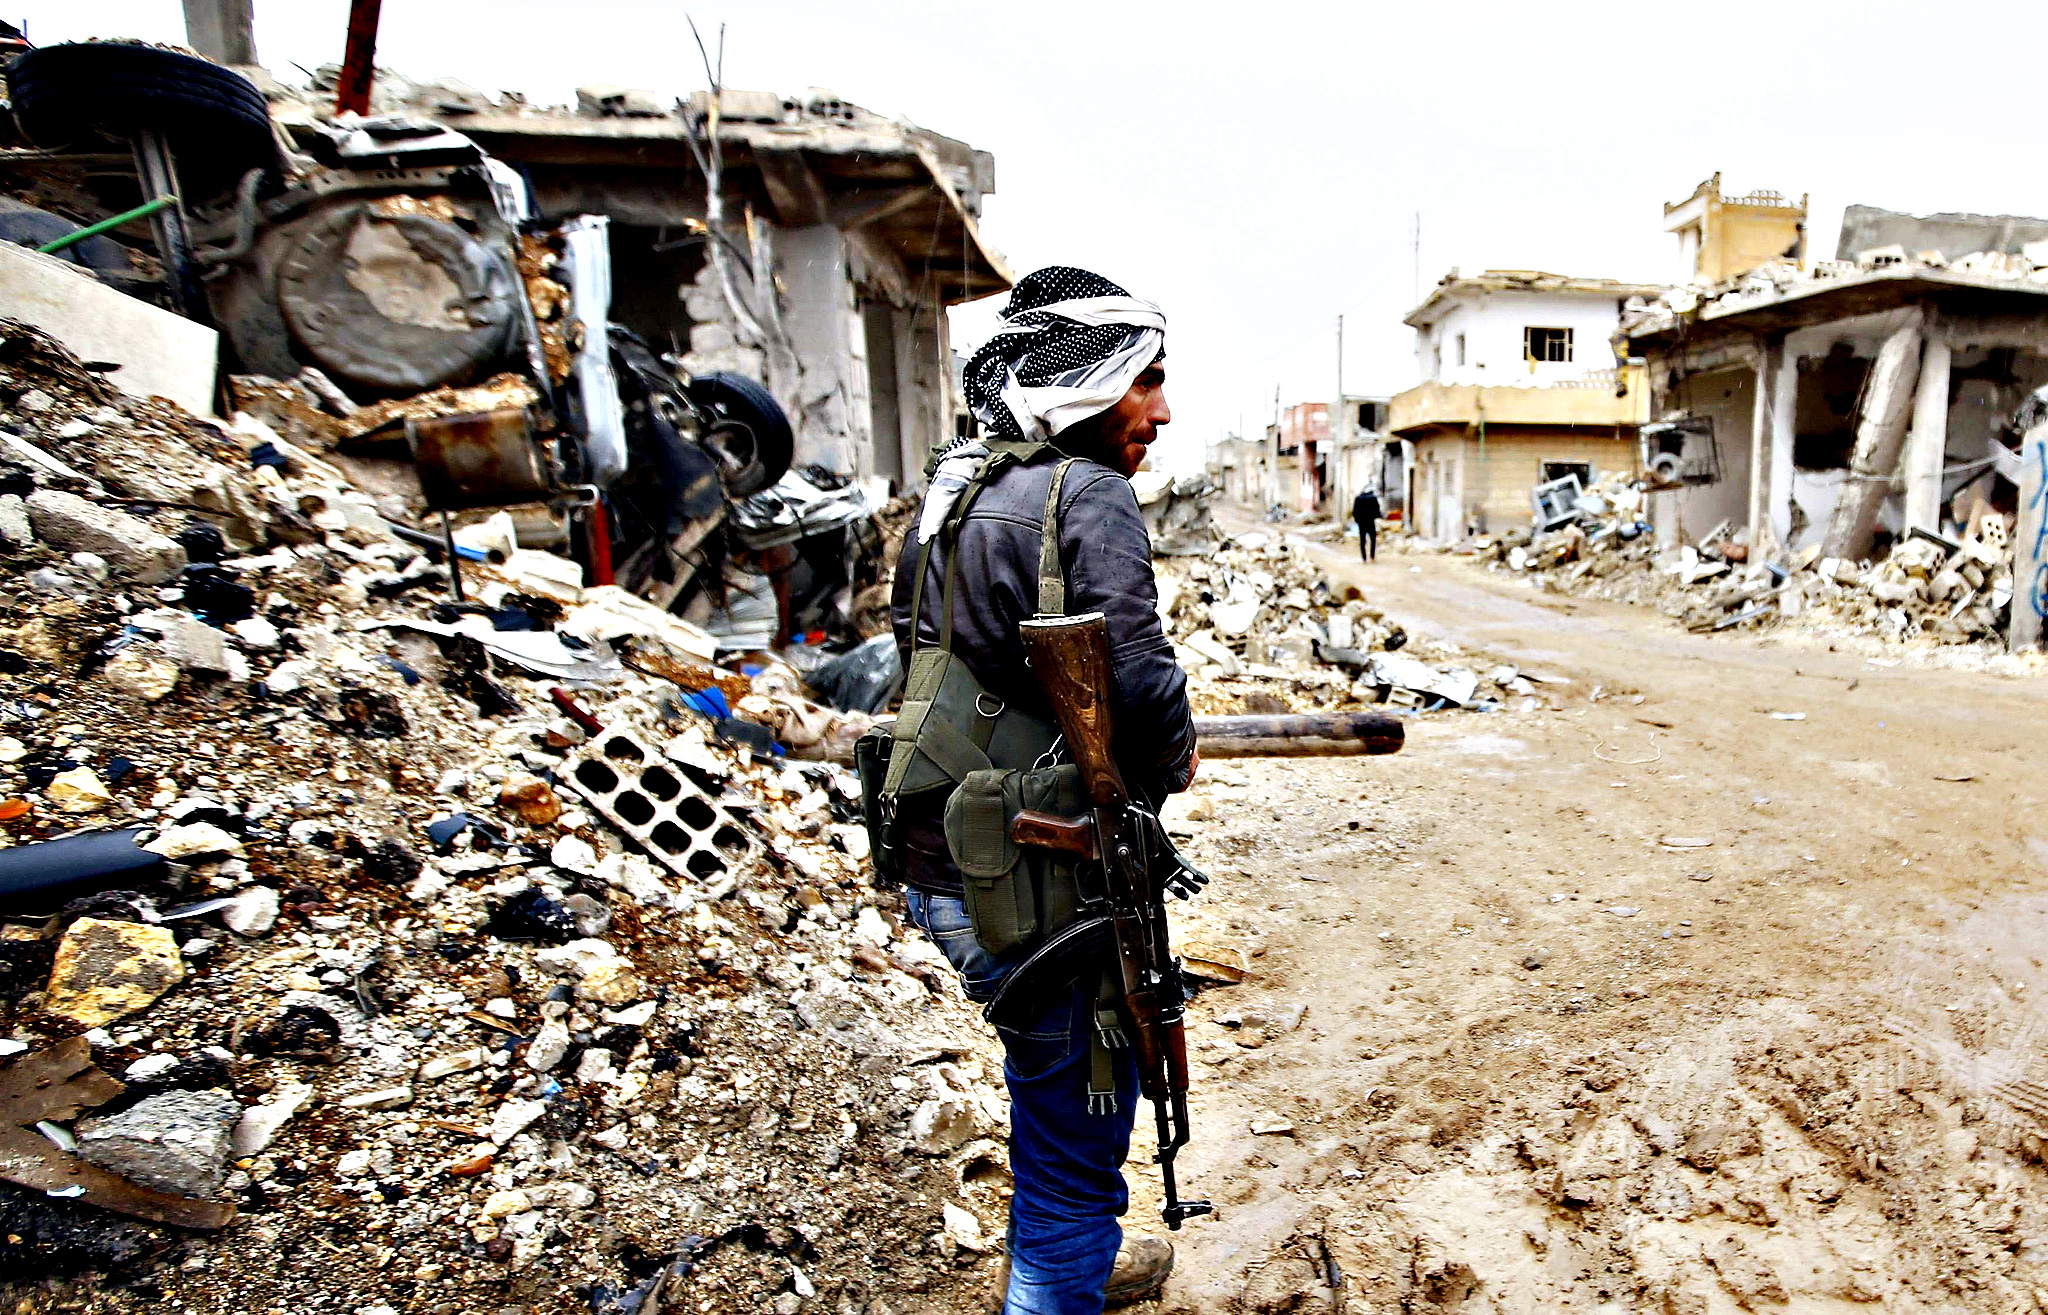 A fighter of the Kurdish People's Protection Units (YPG) stands next to damaged buildings in the northern Syrian town of Kobani January 30, 2015. Sheets meant to hide residents from snipers' sights still hang over streets in the Syrian border town of Kobani, and its shattered buildings and cratered roads suggest those who fled are unlikely to return soon. Kurdish forces said this week they had taken full control of Kobani, a mainly Kurdish town near the Turkish border, after months of bombardment by Islamic State, an al Qaeda offshoot that has spread across Syria and Iraq.